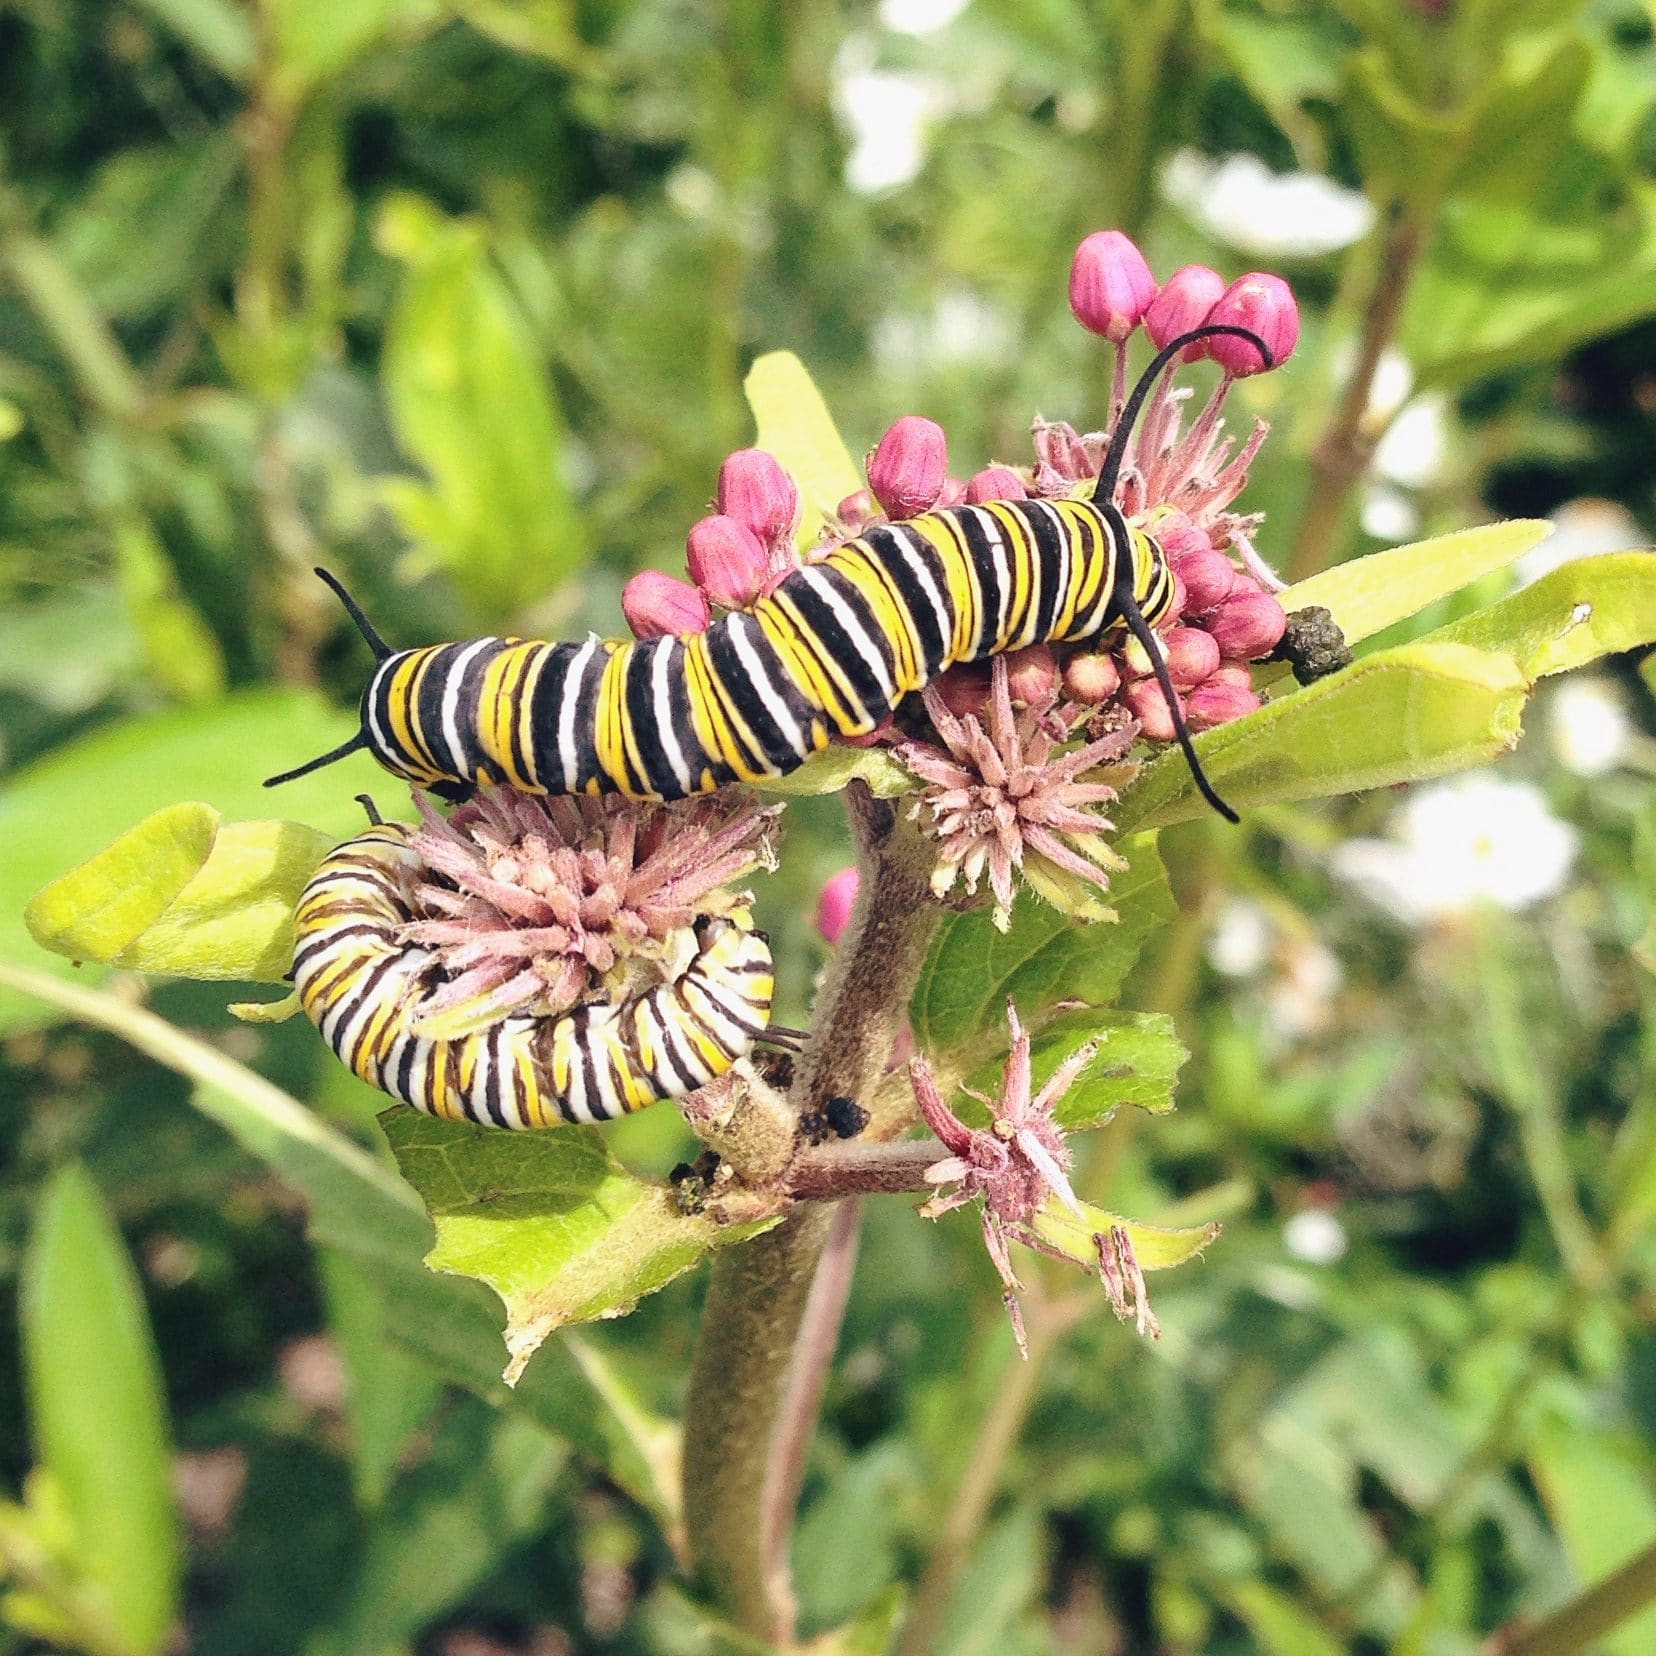 A black and yellow striped caterpillar sits on a pink flower.